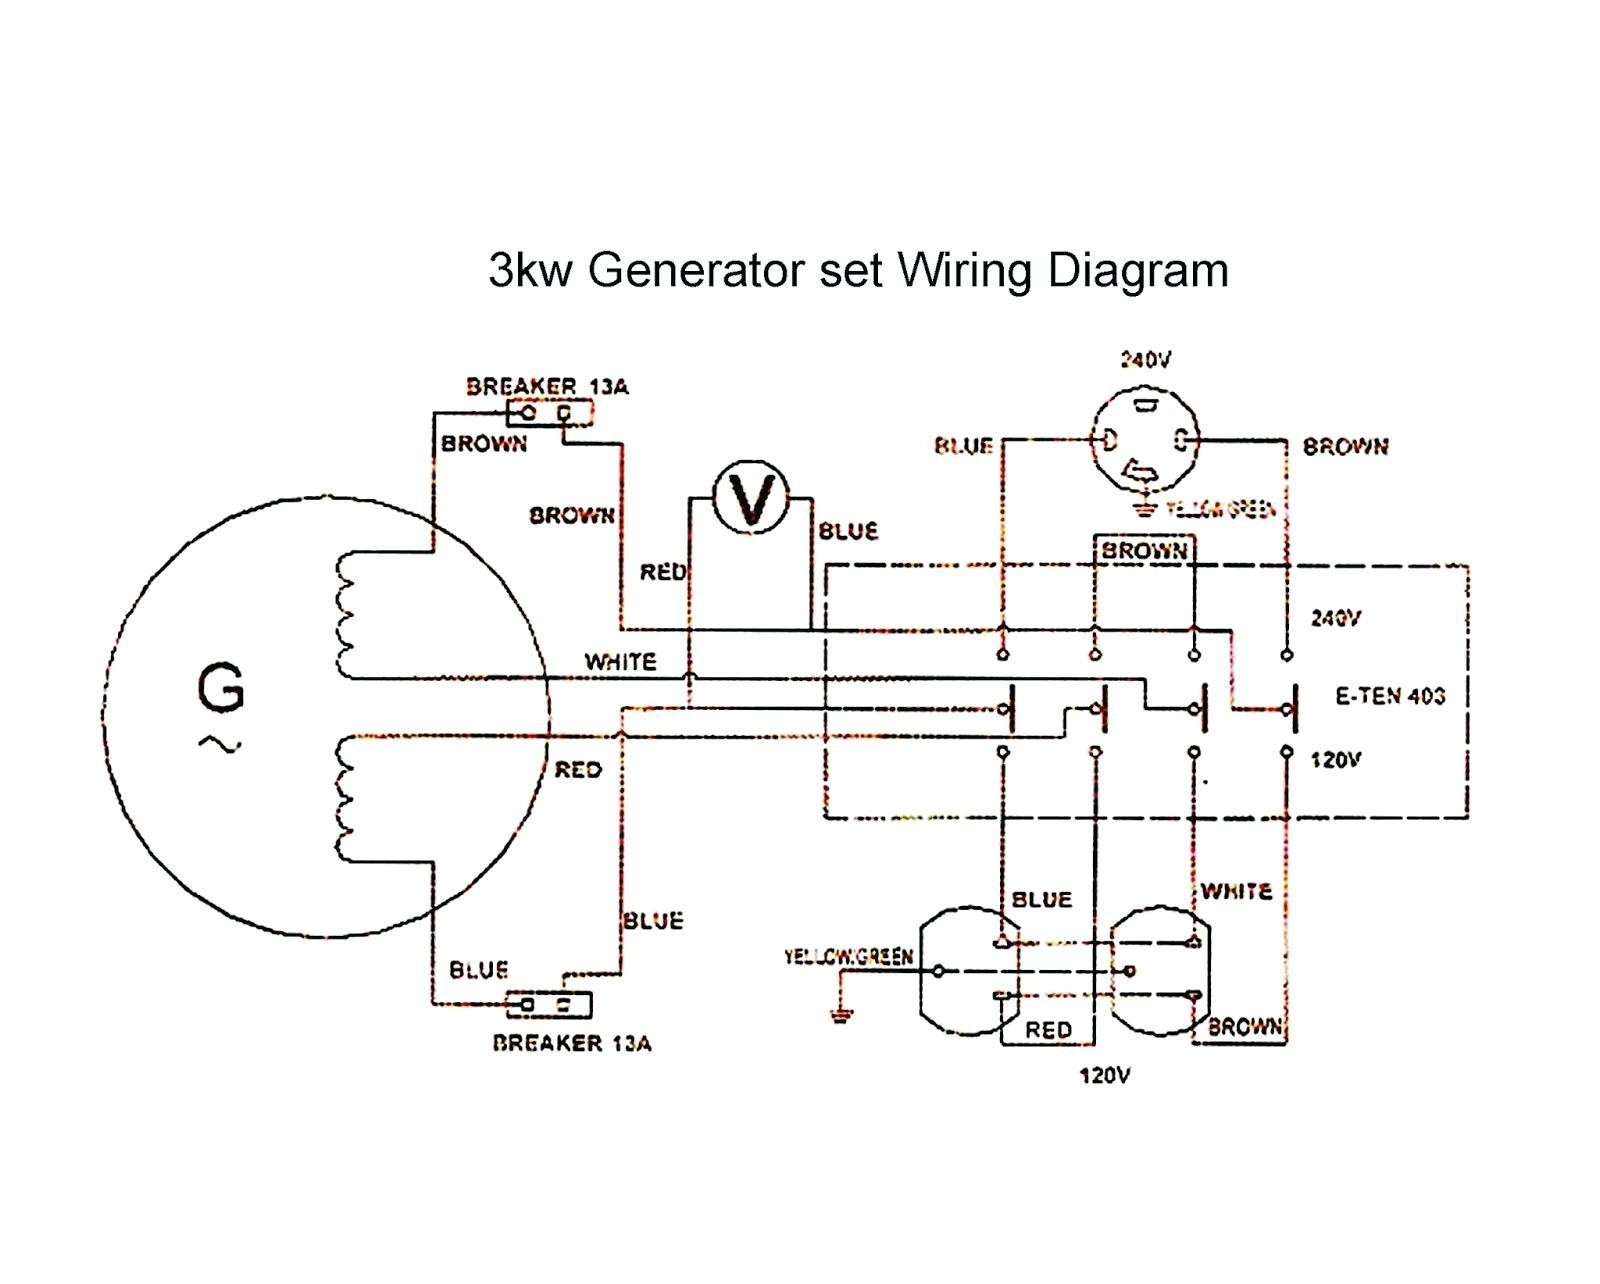 home standby generator wiring diagram Download-Wiring Diagram Home Generator New Wiring Diagram Backup Generator & Schematic Diagram Generator 14-r